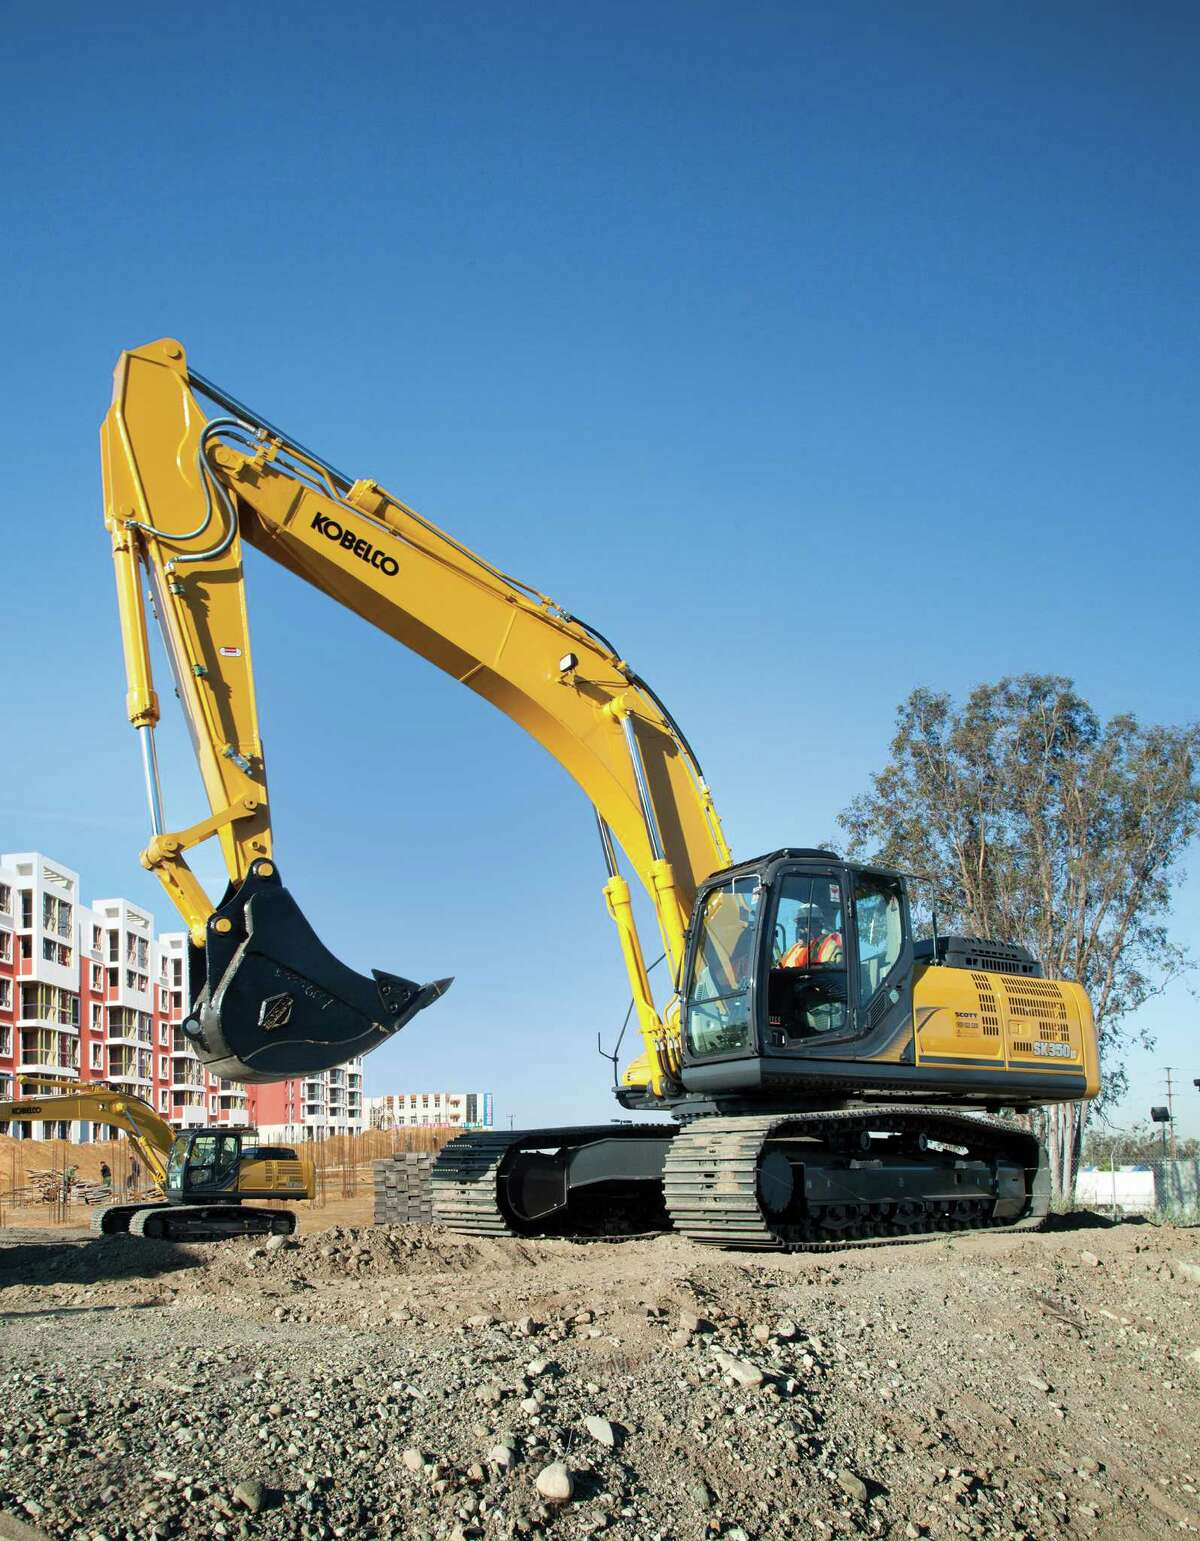 The Kobelco SK350 is one of the midrange models of excavators offered by Kobelco Construction Machinery USA.